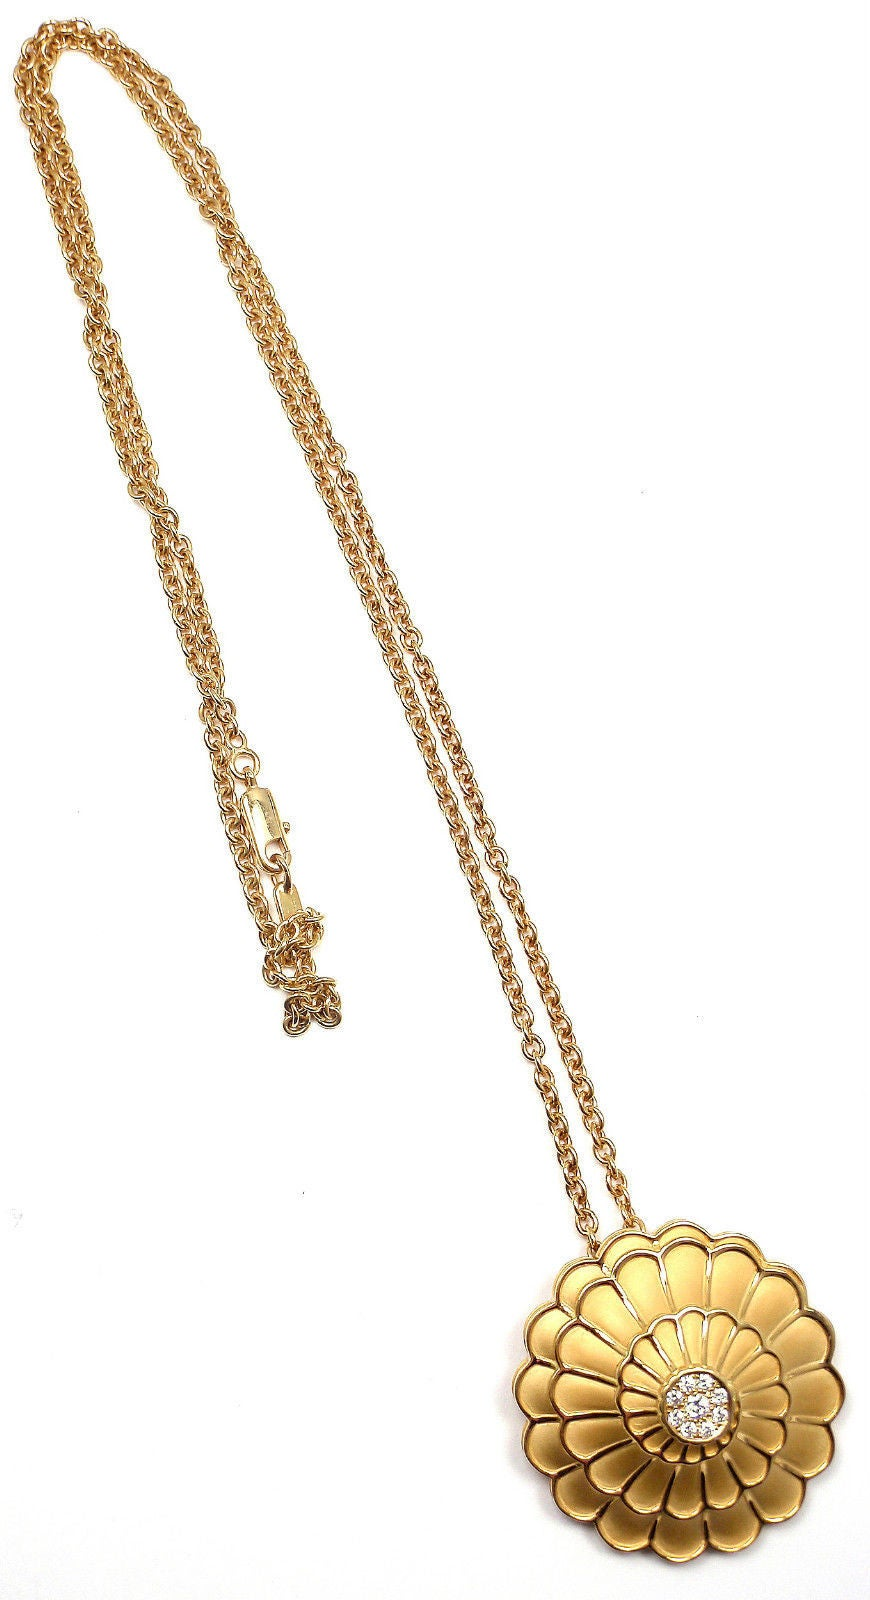 18k Yellow Gold Afrodita Diamond Necklace by Carrera Y Carrera. With 8 round brilliant cut diamonds VS1 Clarity G Color  total weight approximately .31ct This necklace comes with Box, Certificate and Tag.  Details: Length: Length: